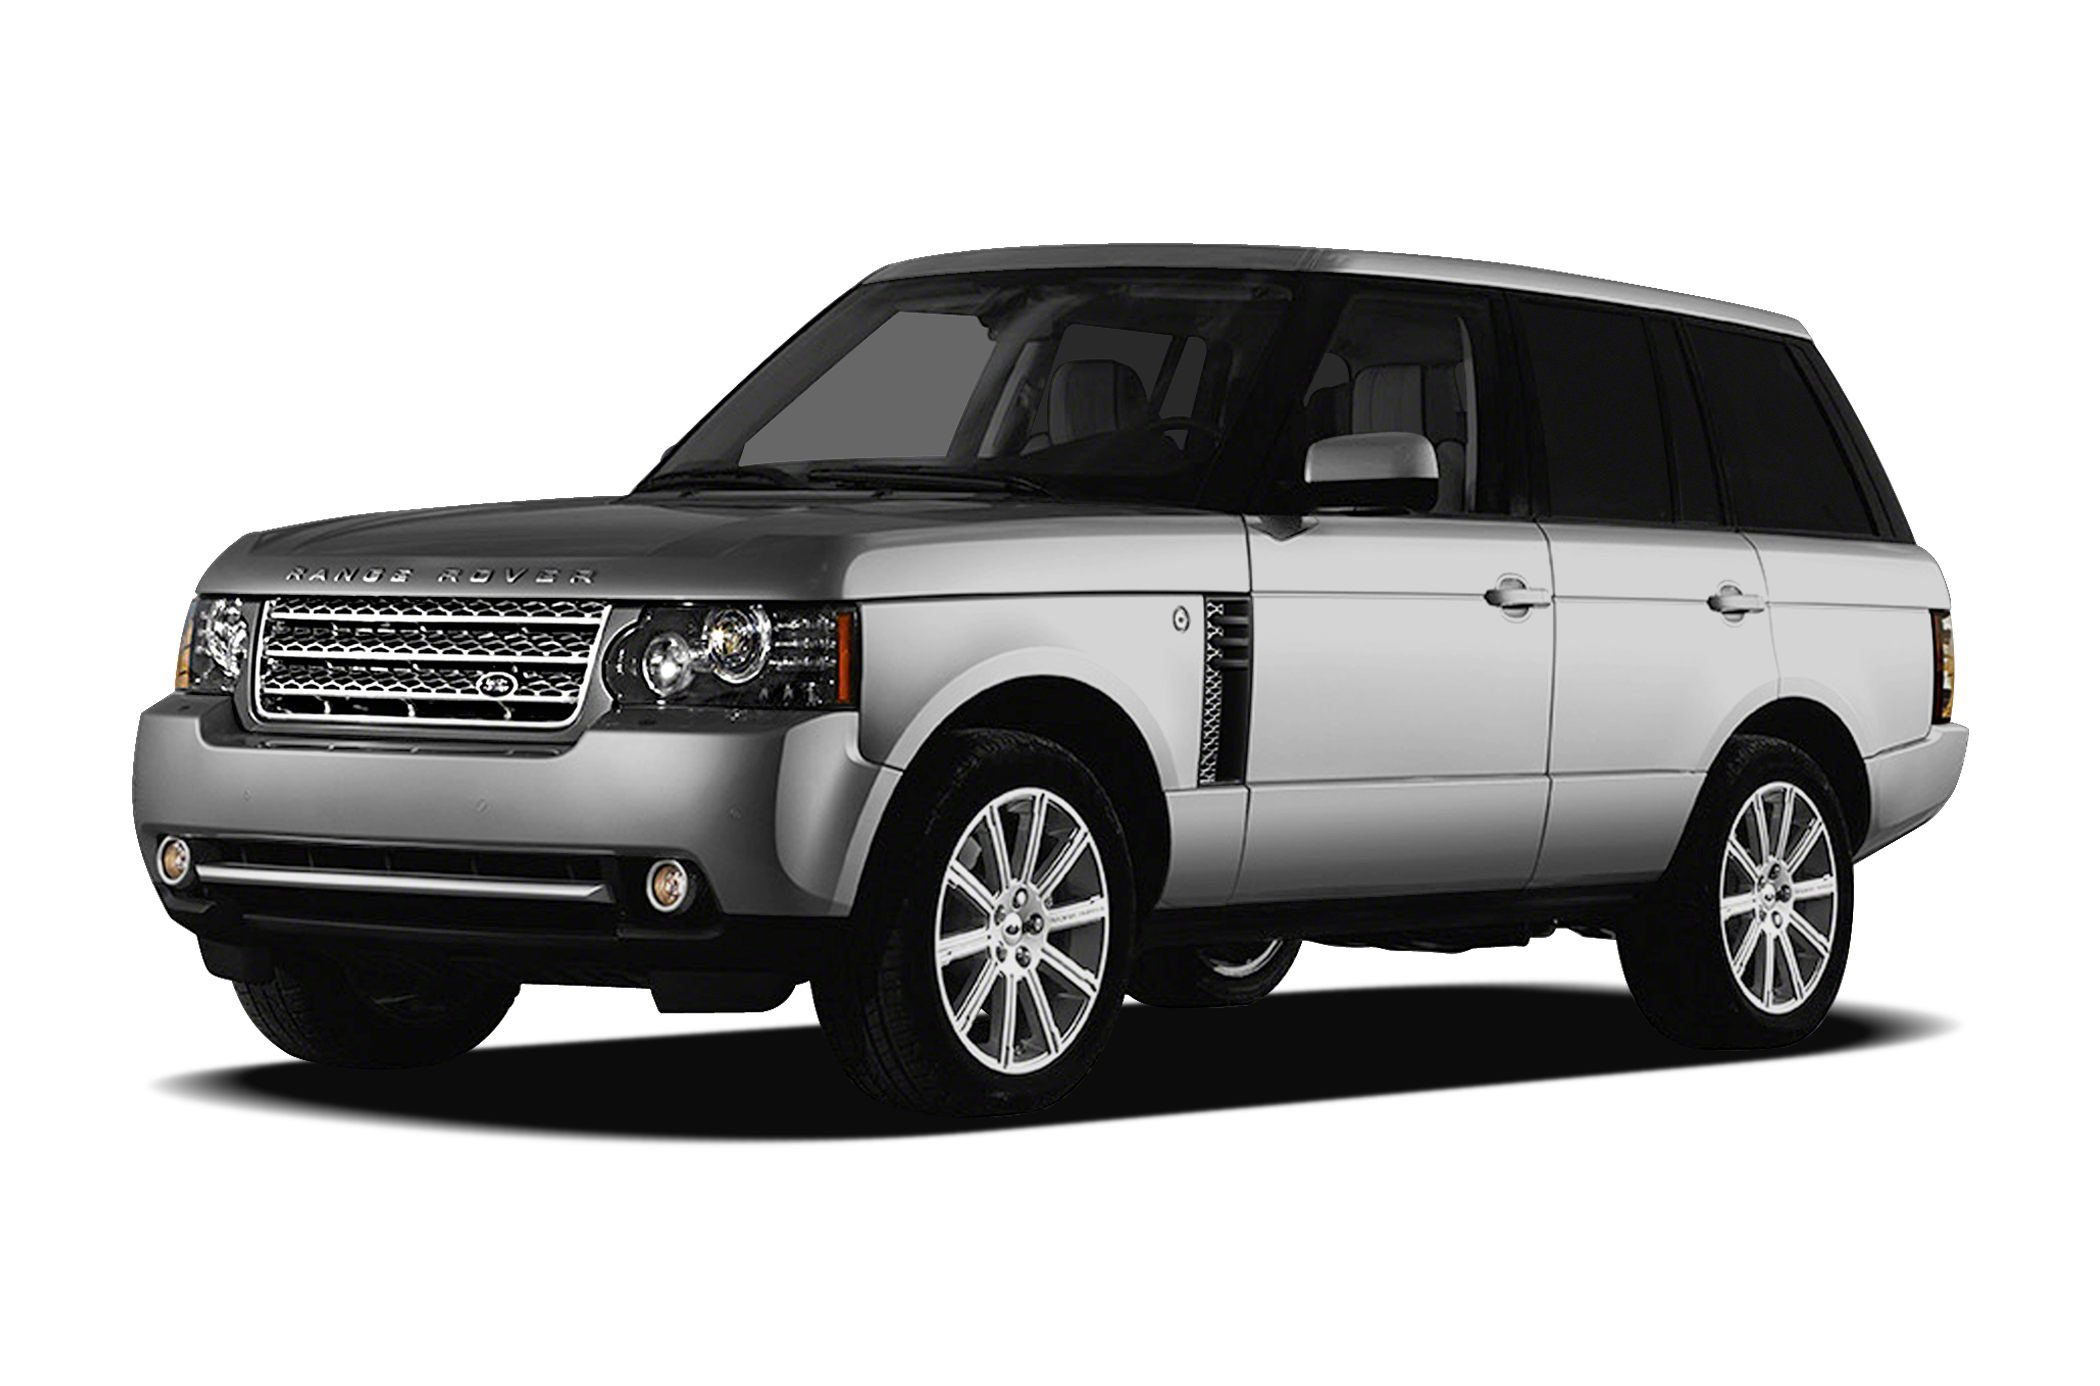 2011 Land Rover Range Rover Supercharged SUV for sale in Dallas for $0 with 45,686 miles